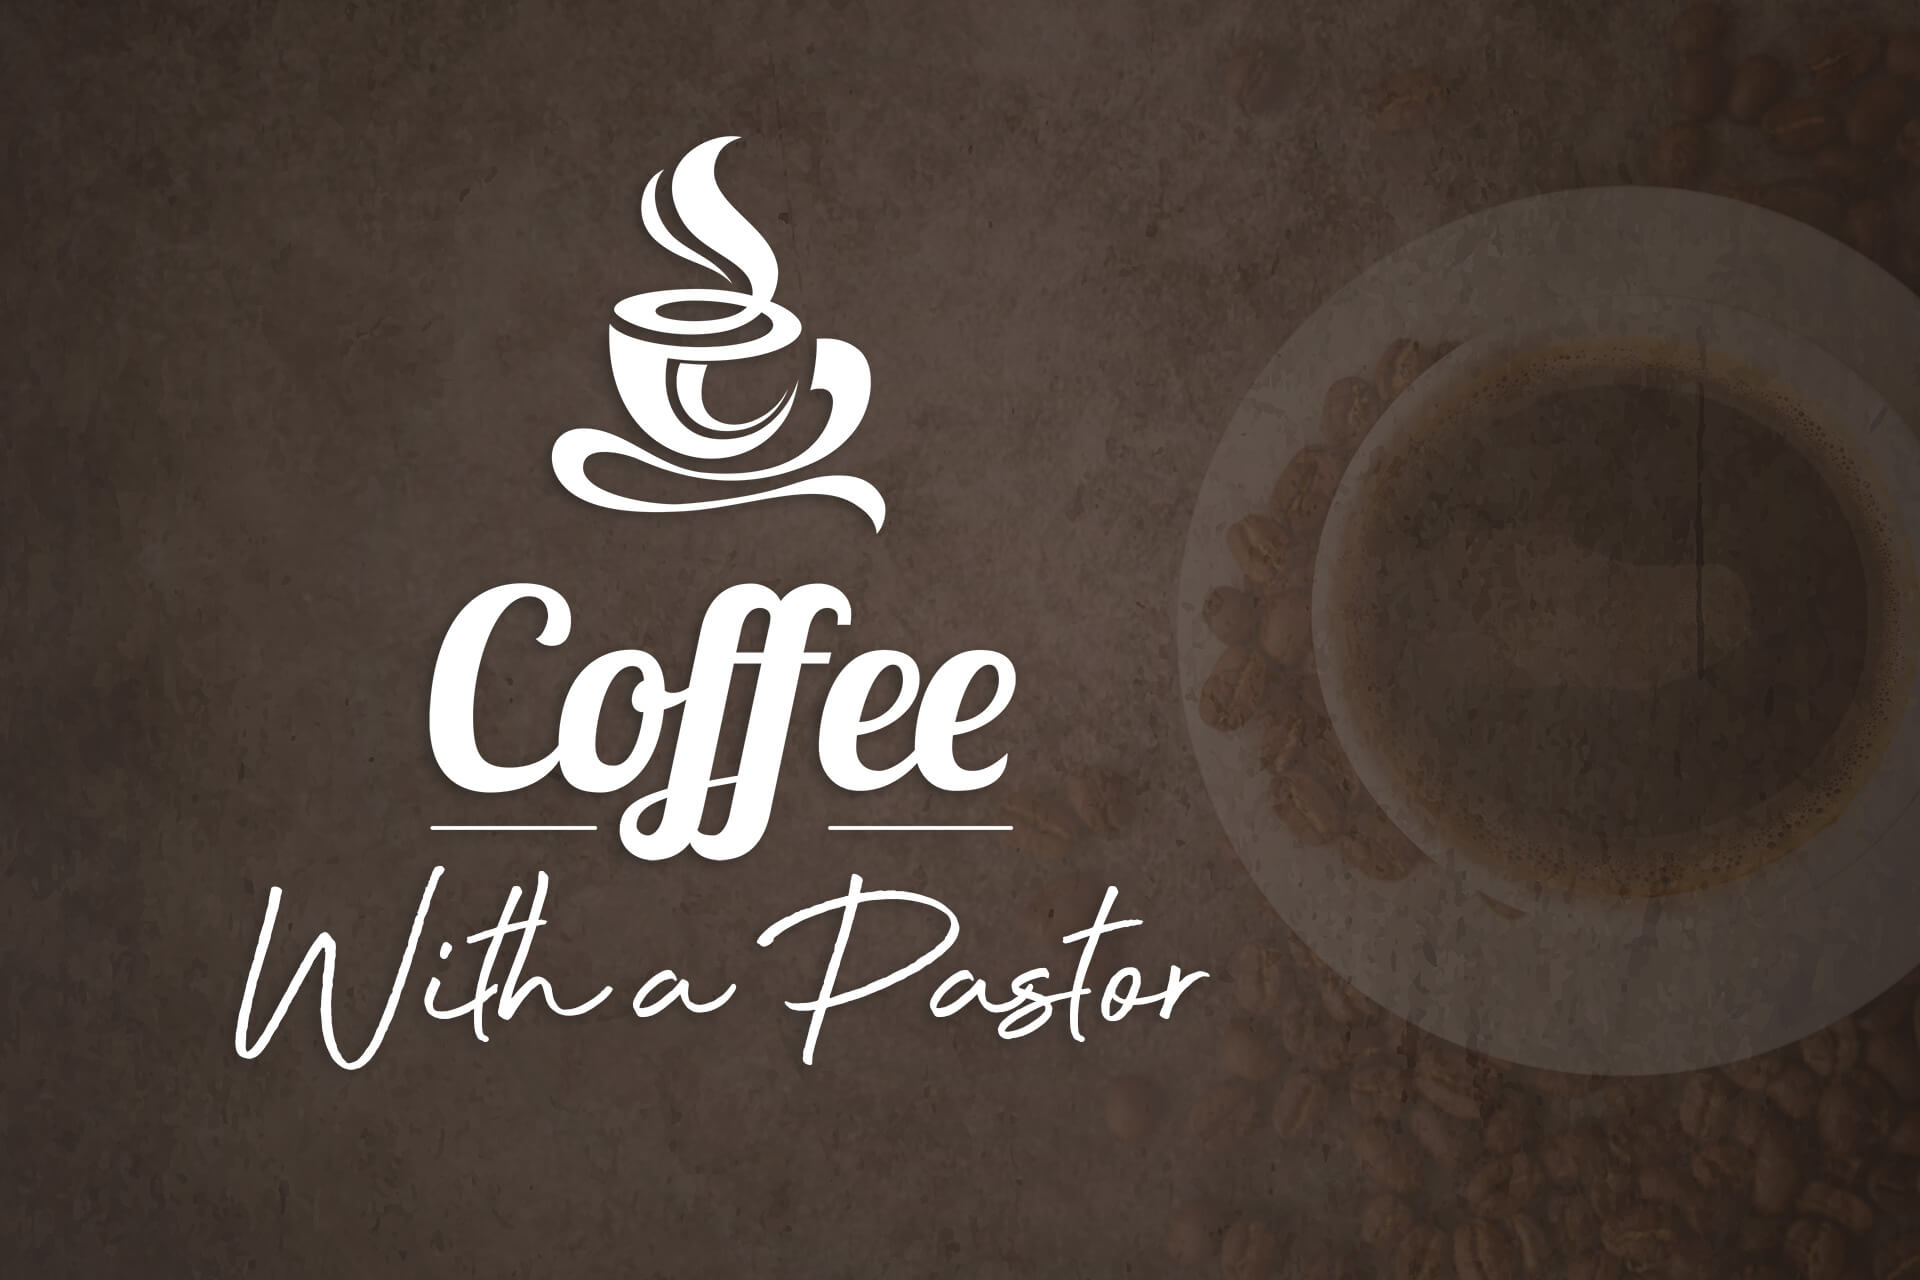 Coffee With a Pastor